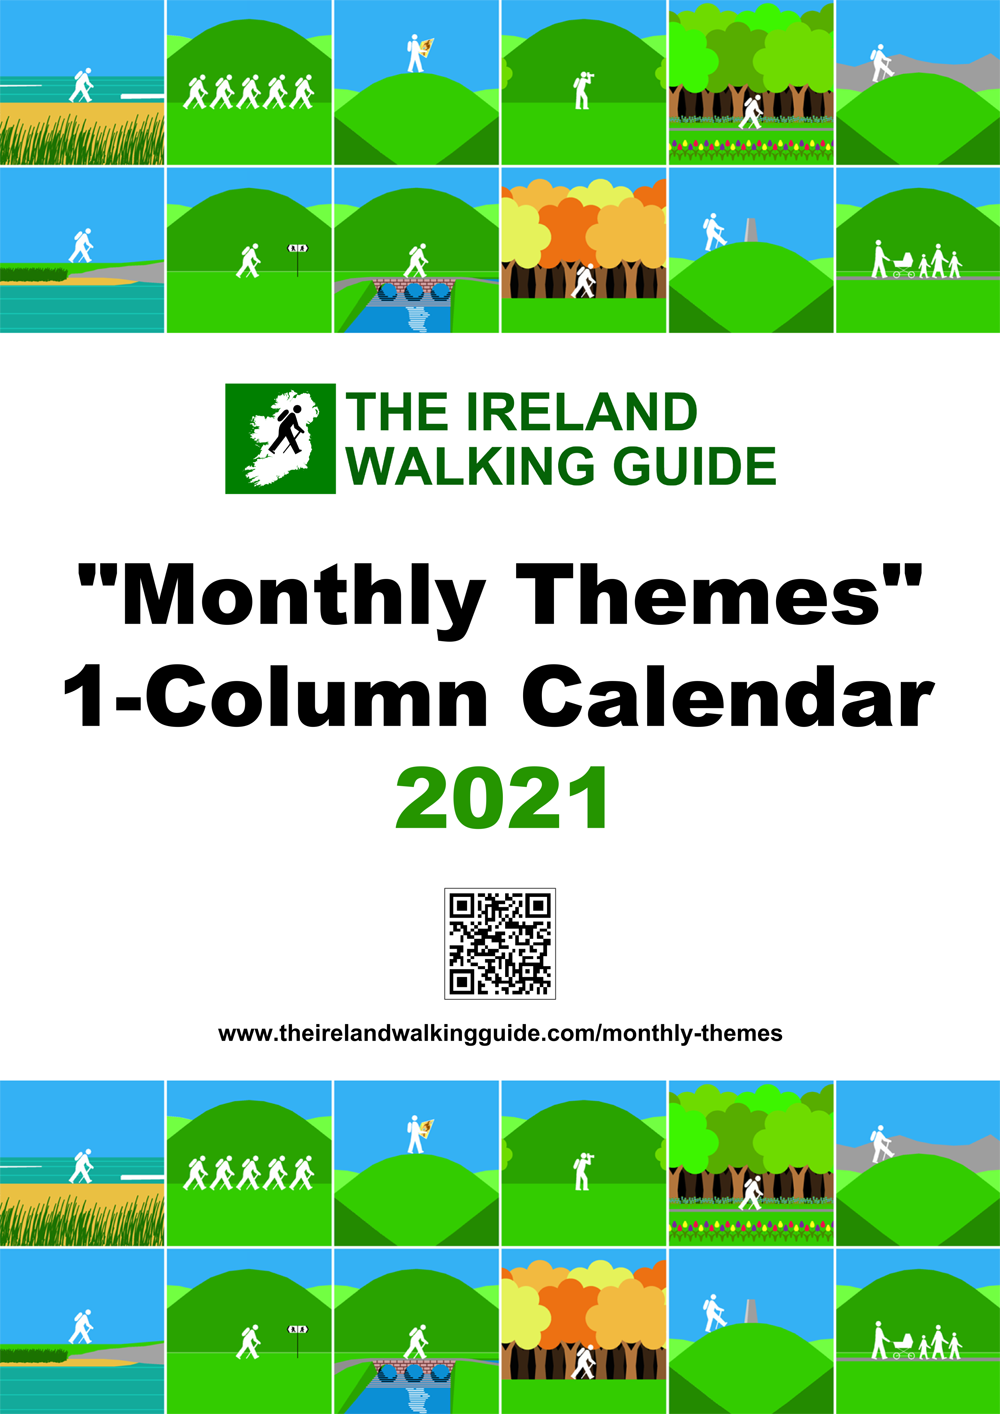 The Ireland Walking Guide 2021 Monthly Themes 1-Column Calendar